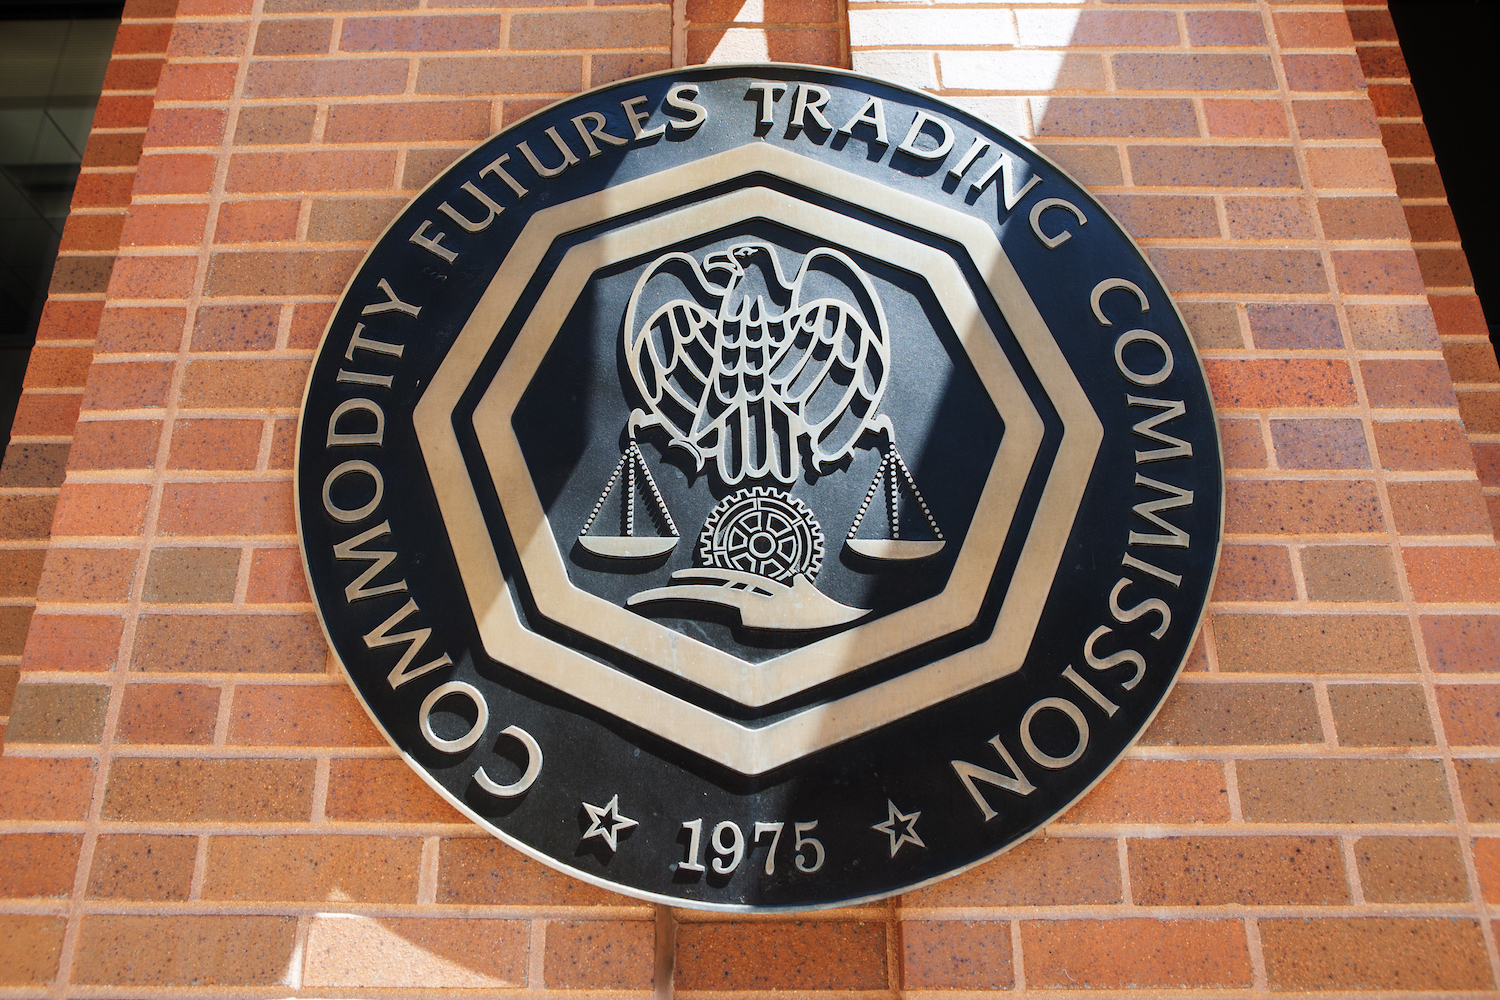 Biden Administration to Pick Acting Chairman Rostin Behnam to Head CFTC: Report